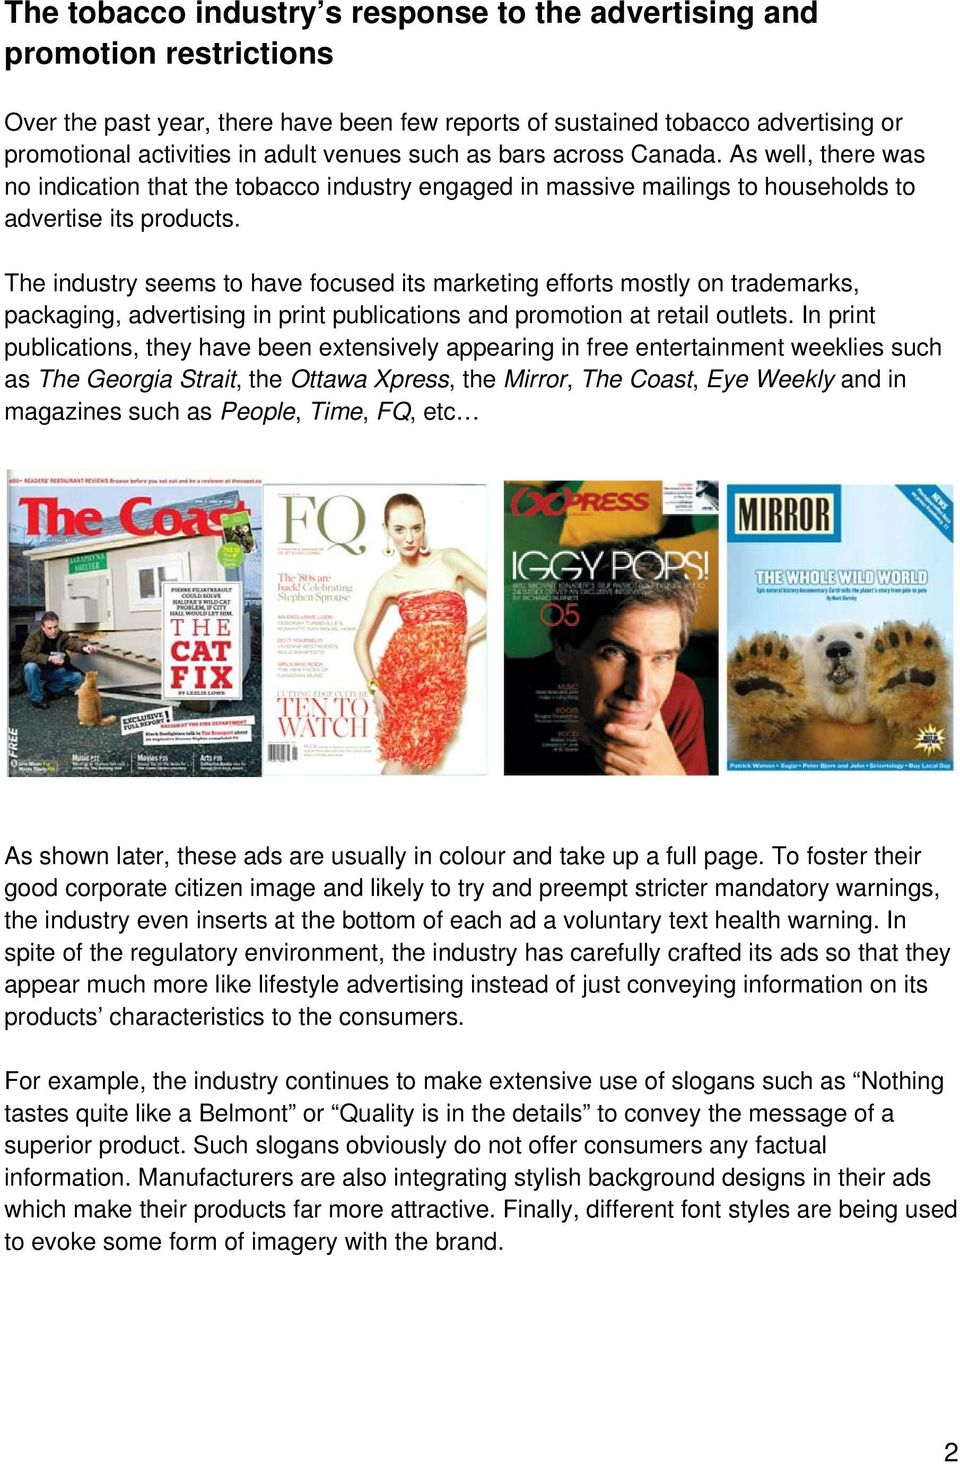 The industry seems to have focused its marketing efforts mostly on trademarks, packaging, advertising in print publications and promotion at retail outlets.